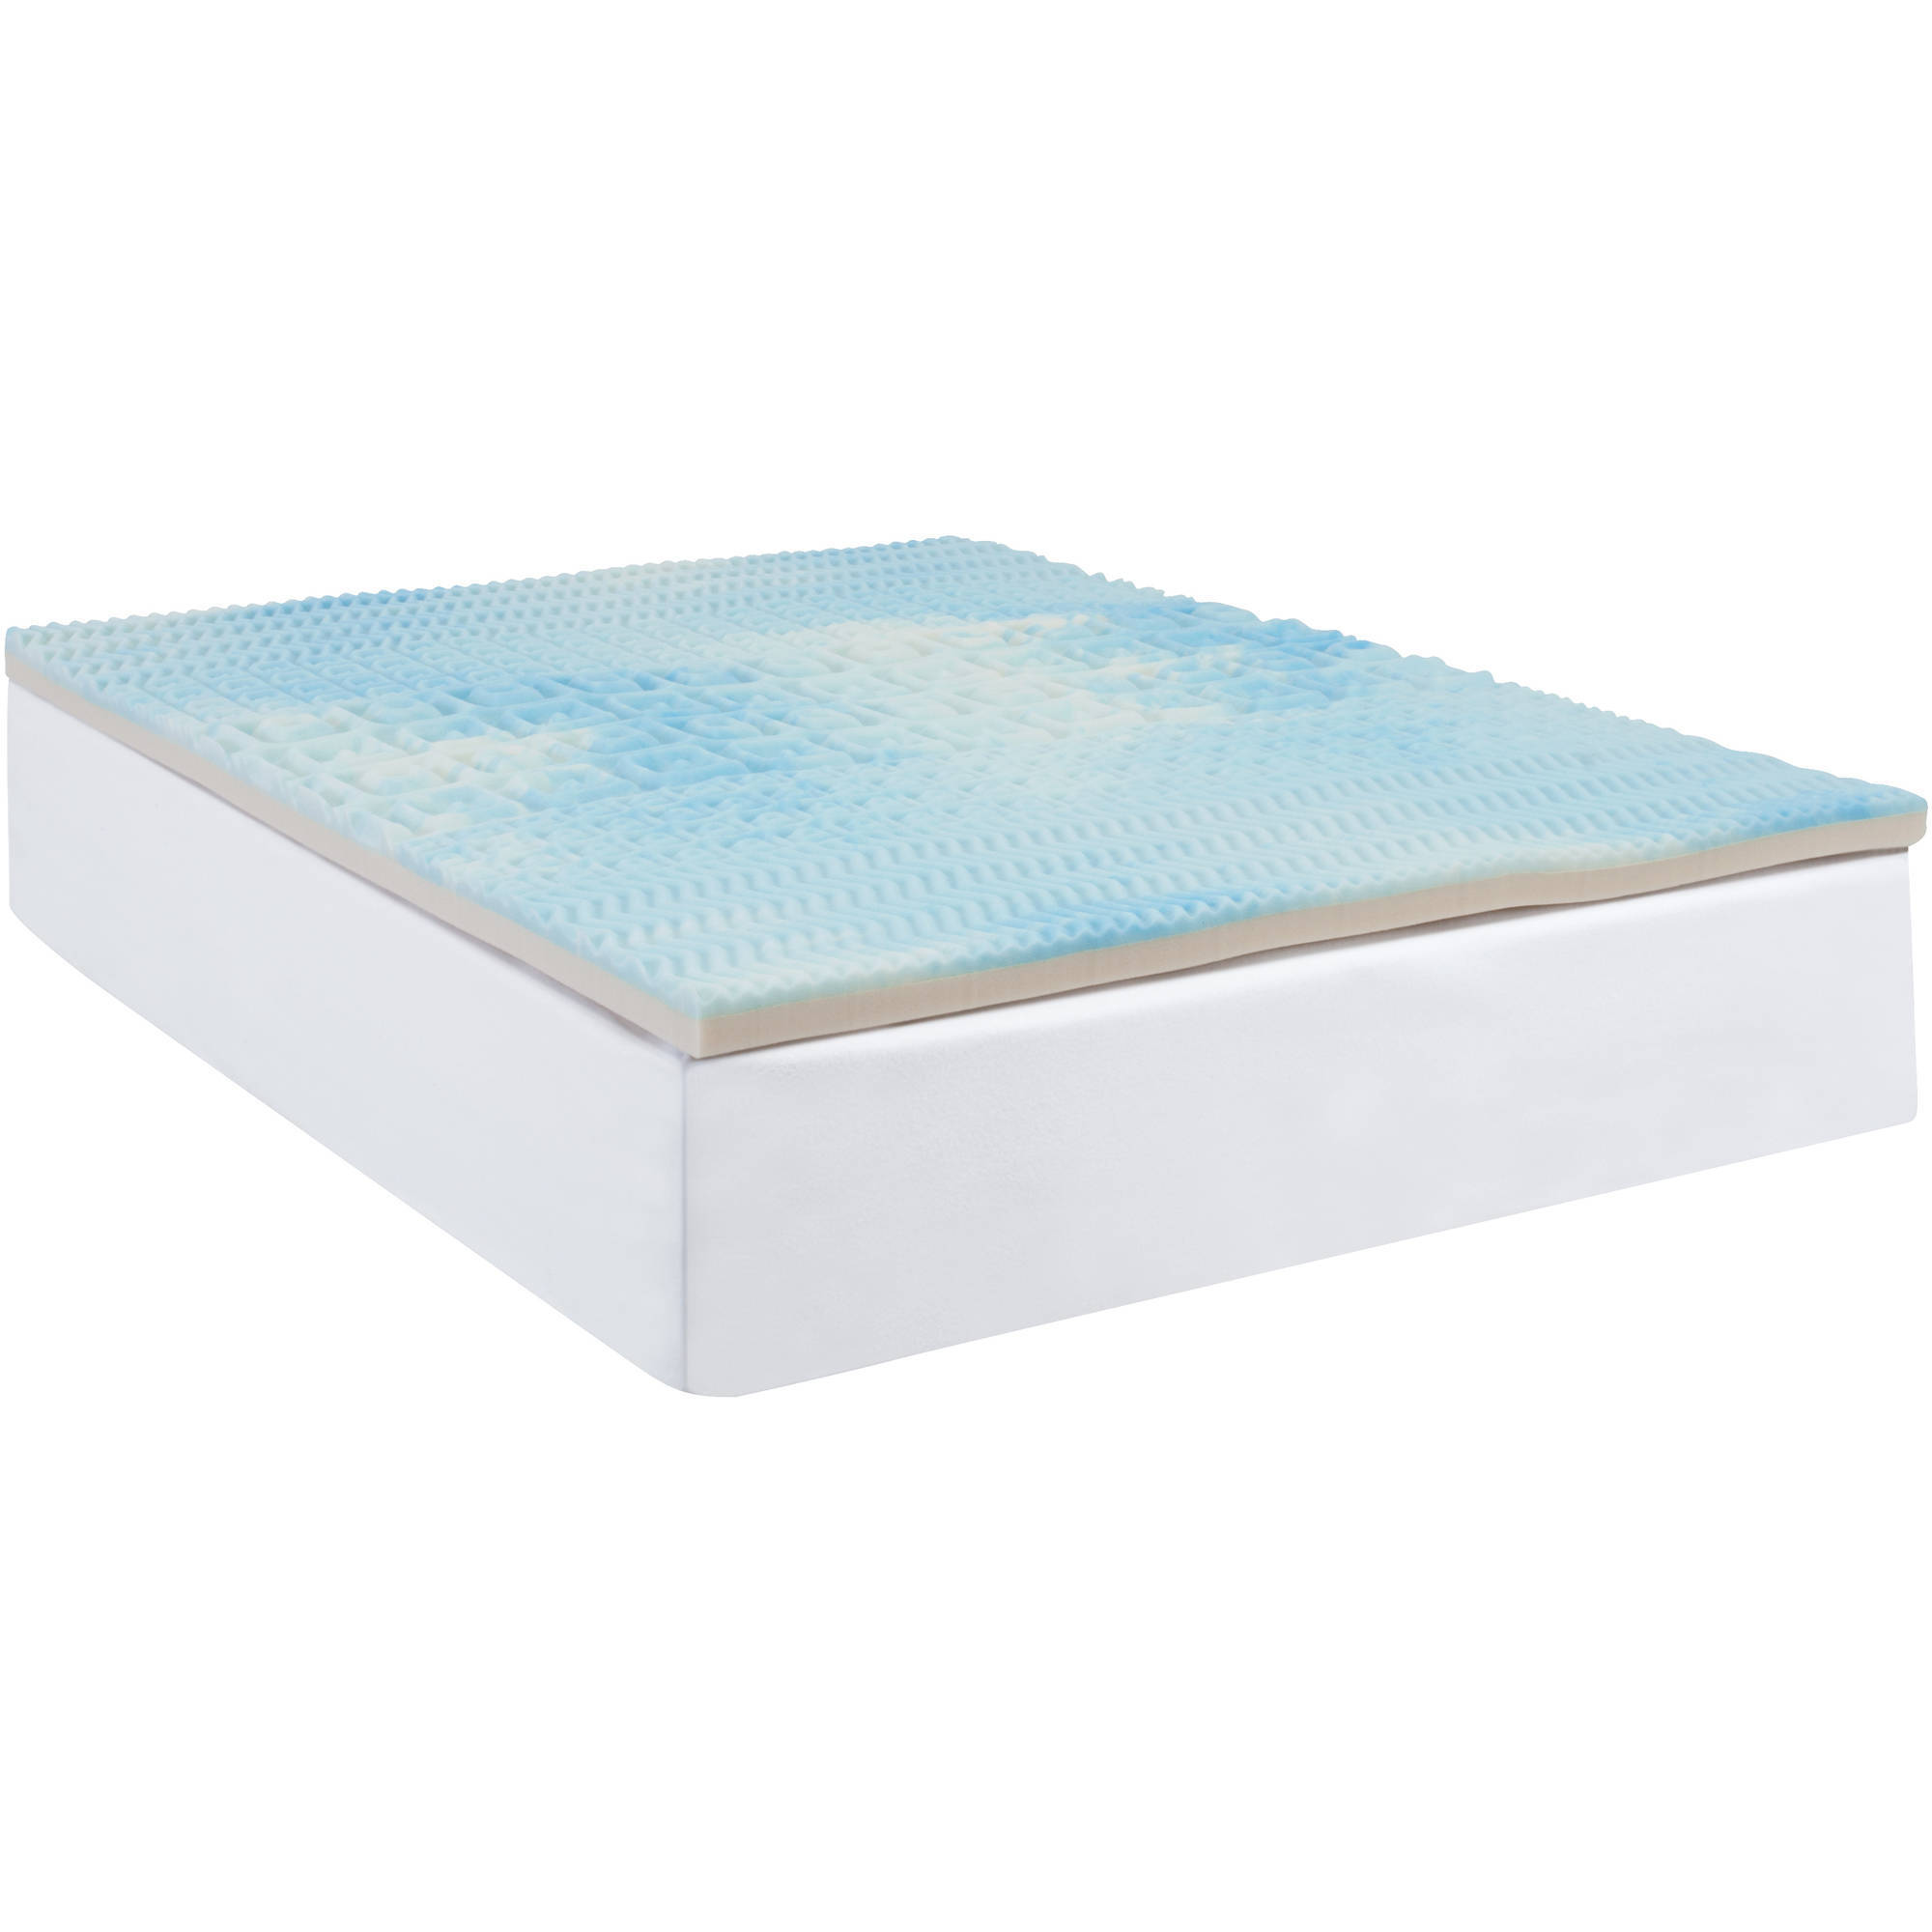 3 Inch Memory Foam Mattress Topper Queen Orthopedic Bed Cover King Full Twin Siz Ebay